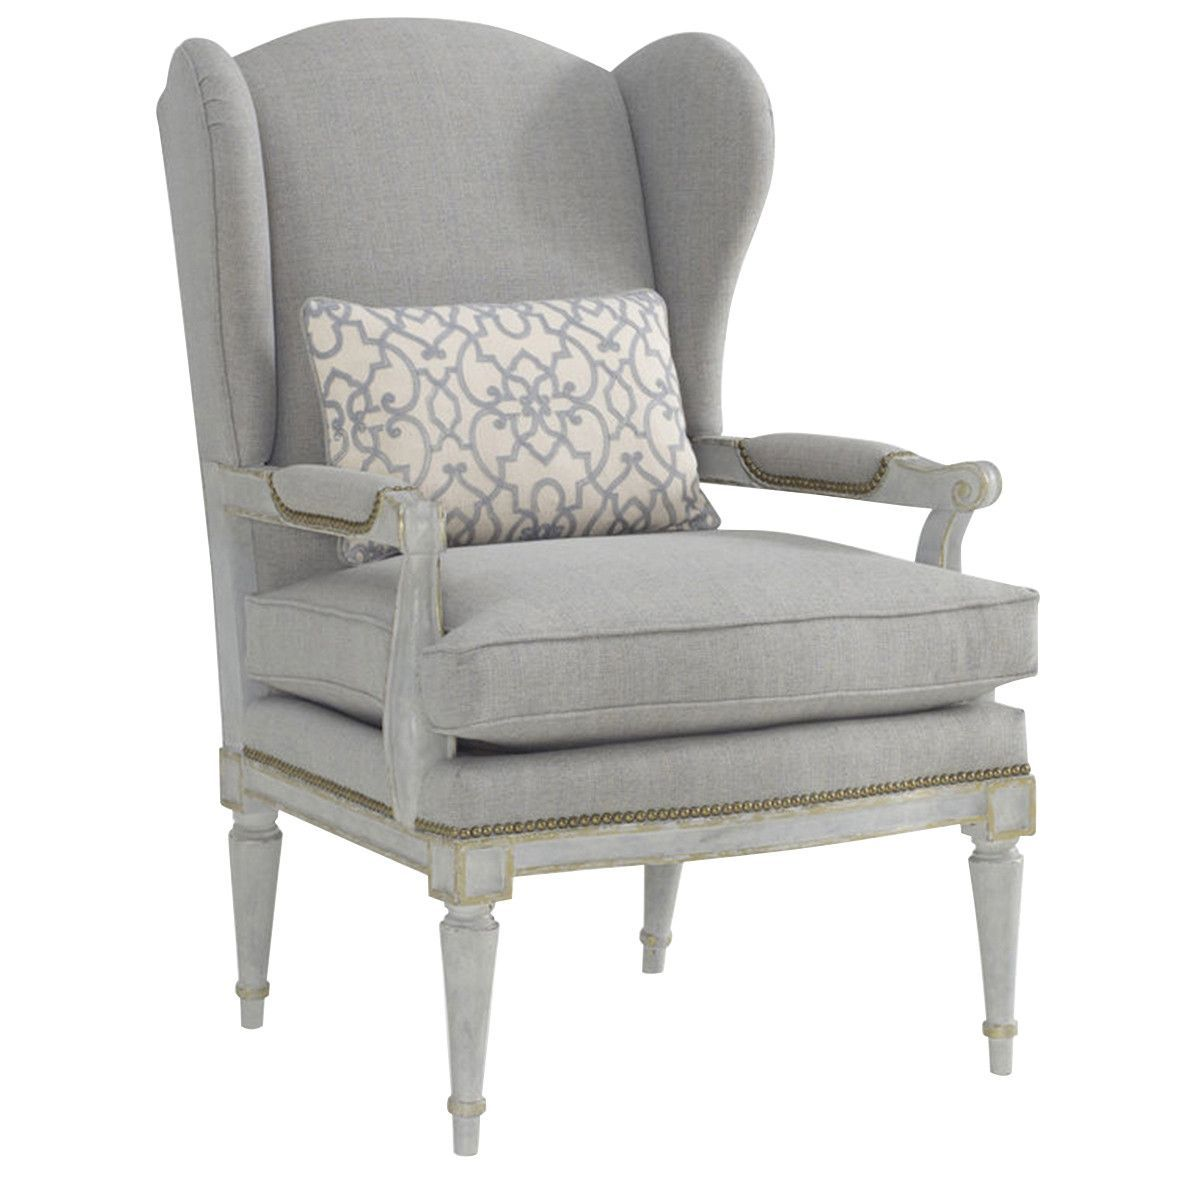 Art Furniture The Foundry Upholdstered Parisian Wing Chair 712599